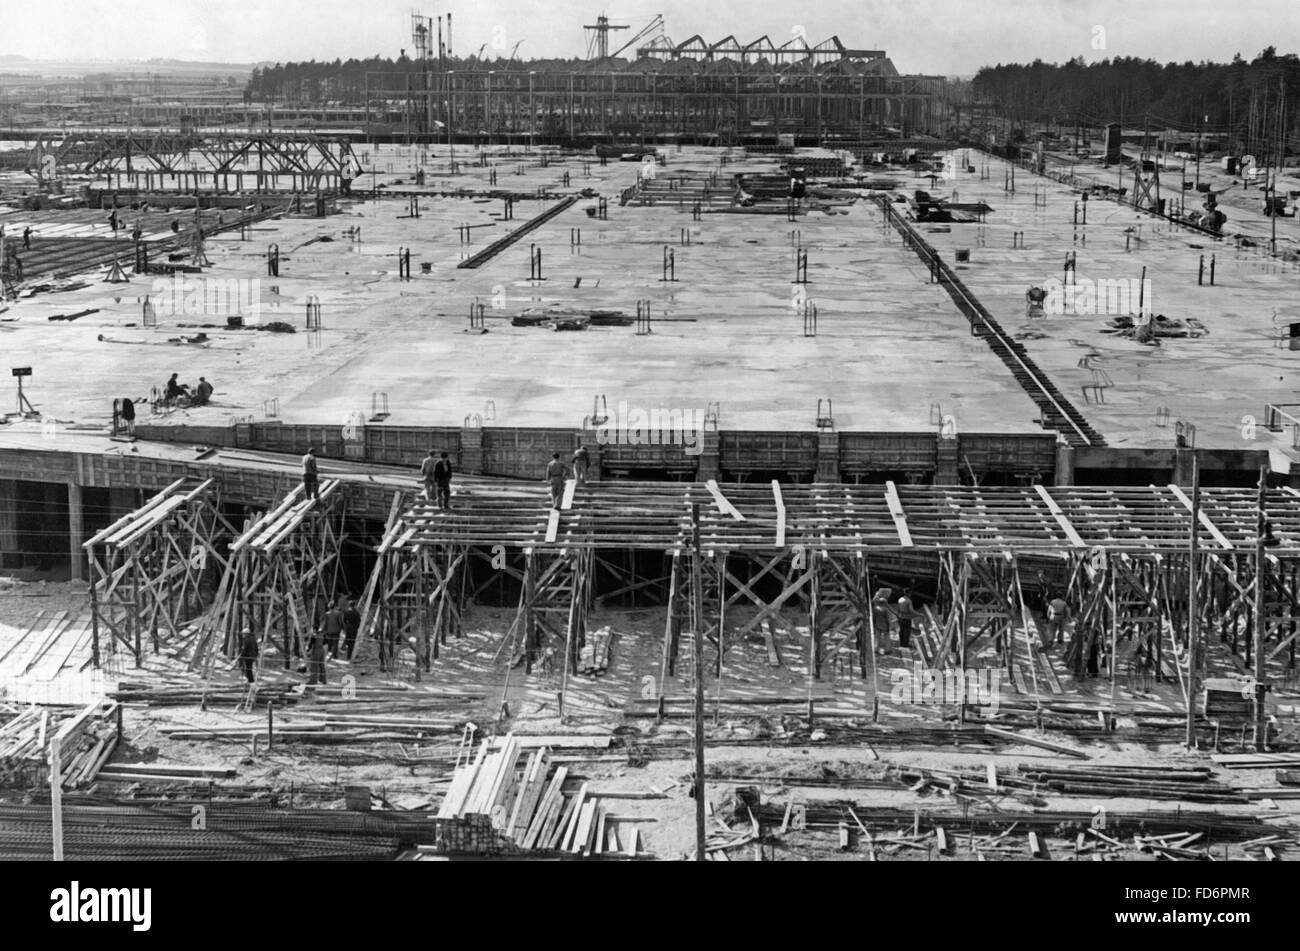 Automobile industry: VW plant under construction - building of the VW plant in Fallersleben, 1938 Stock Photo